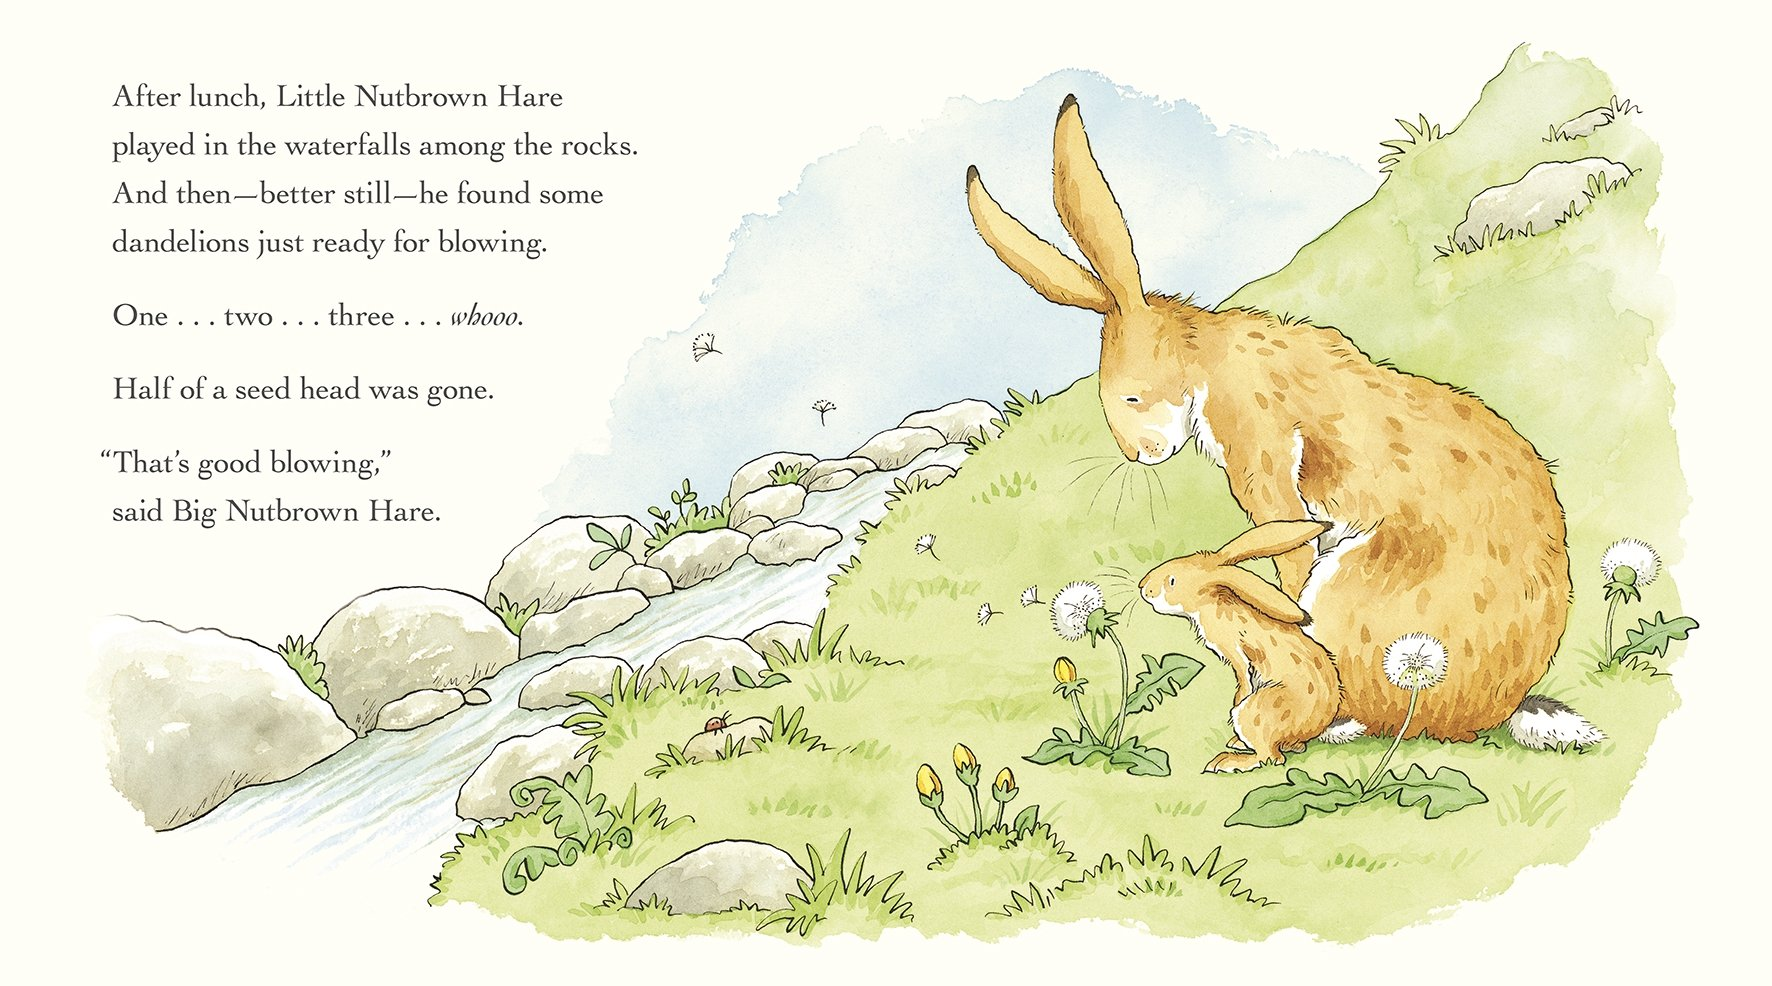 The Adventures Of Little Nutbrown Hare Guess How Much I Love You